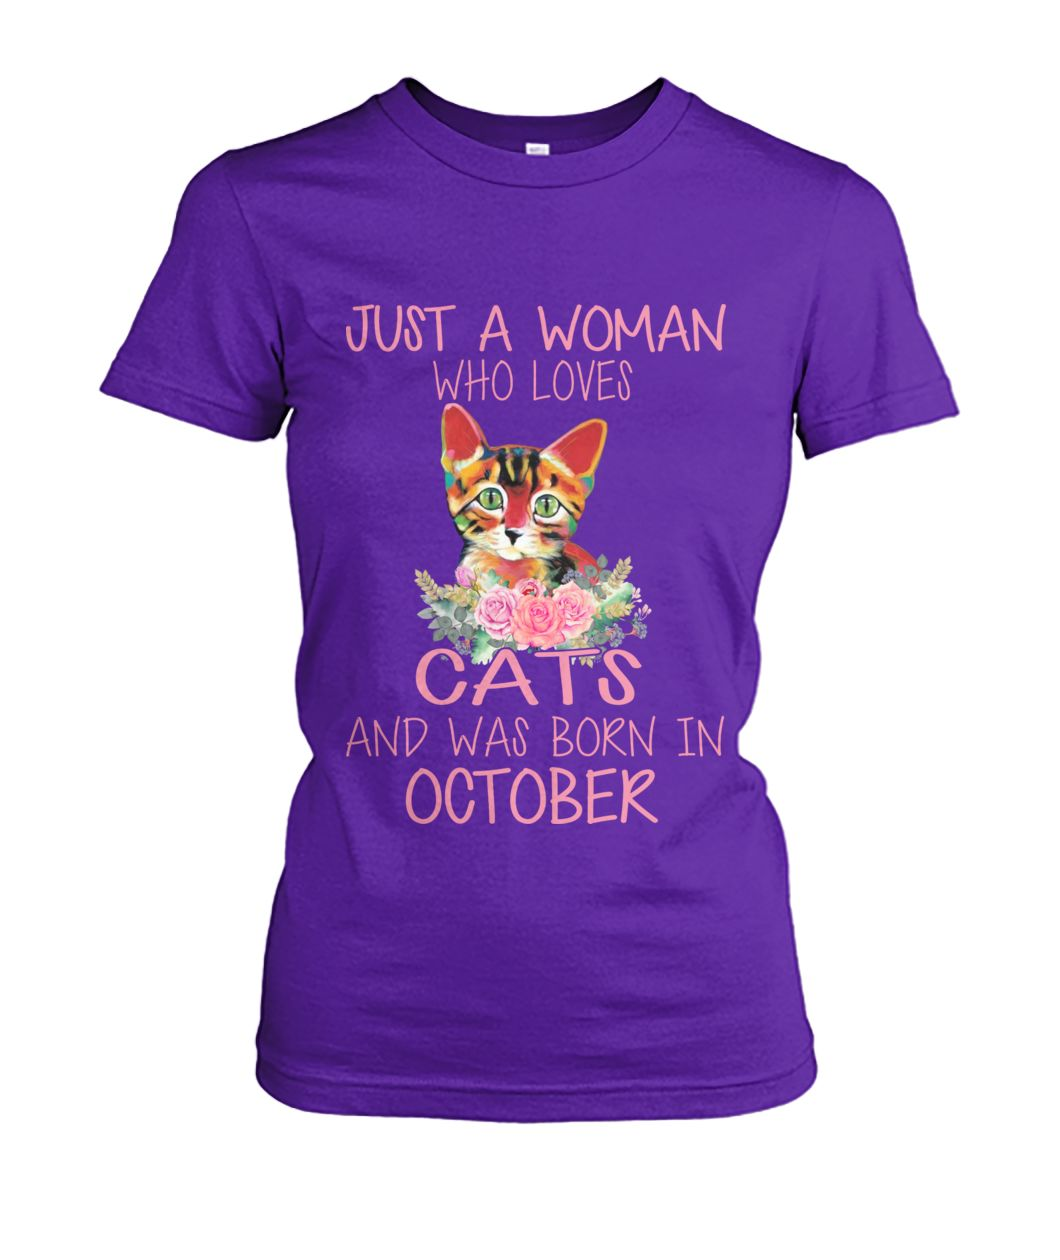 just a woman who loves cats and was born in october tshirt